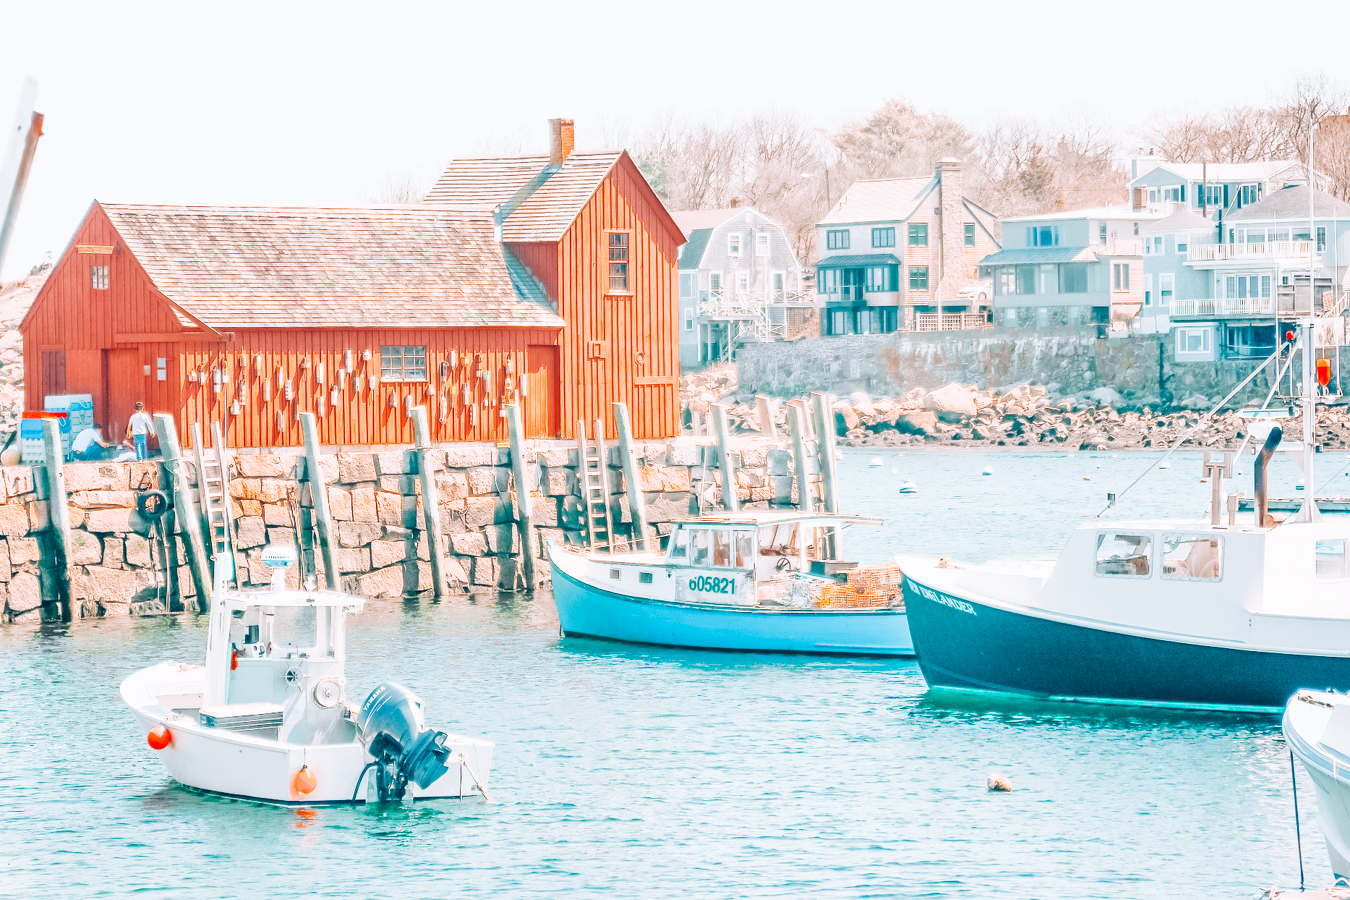 Buildings and boats in Rockport